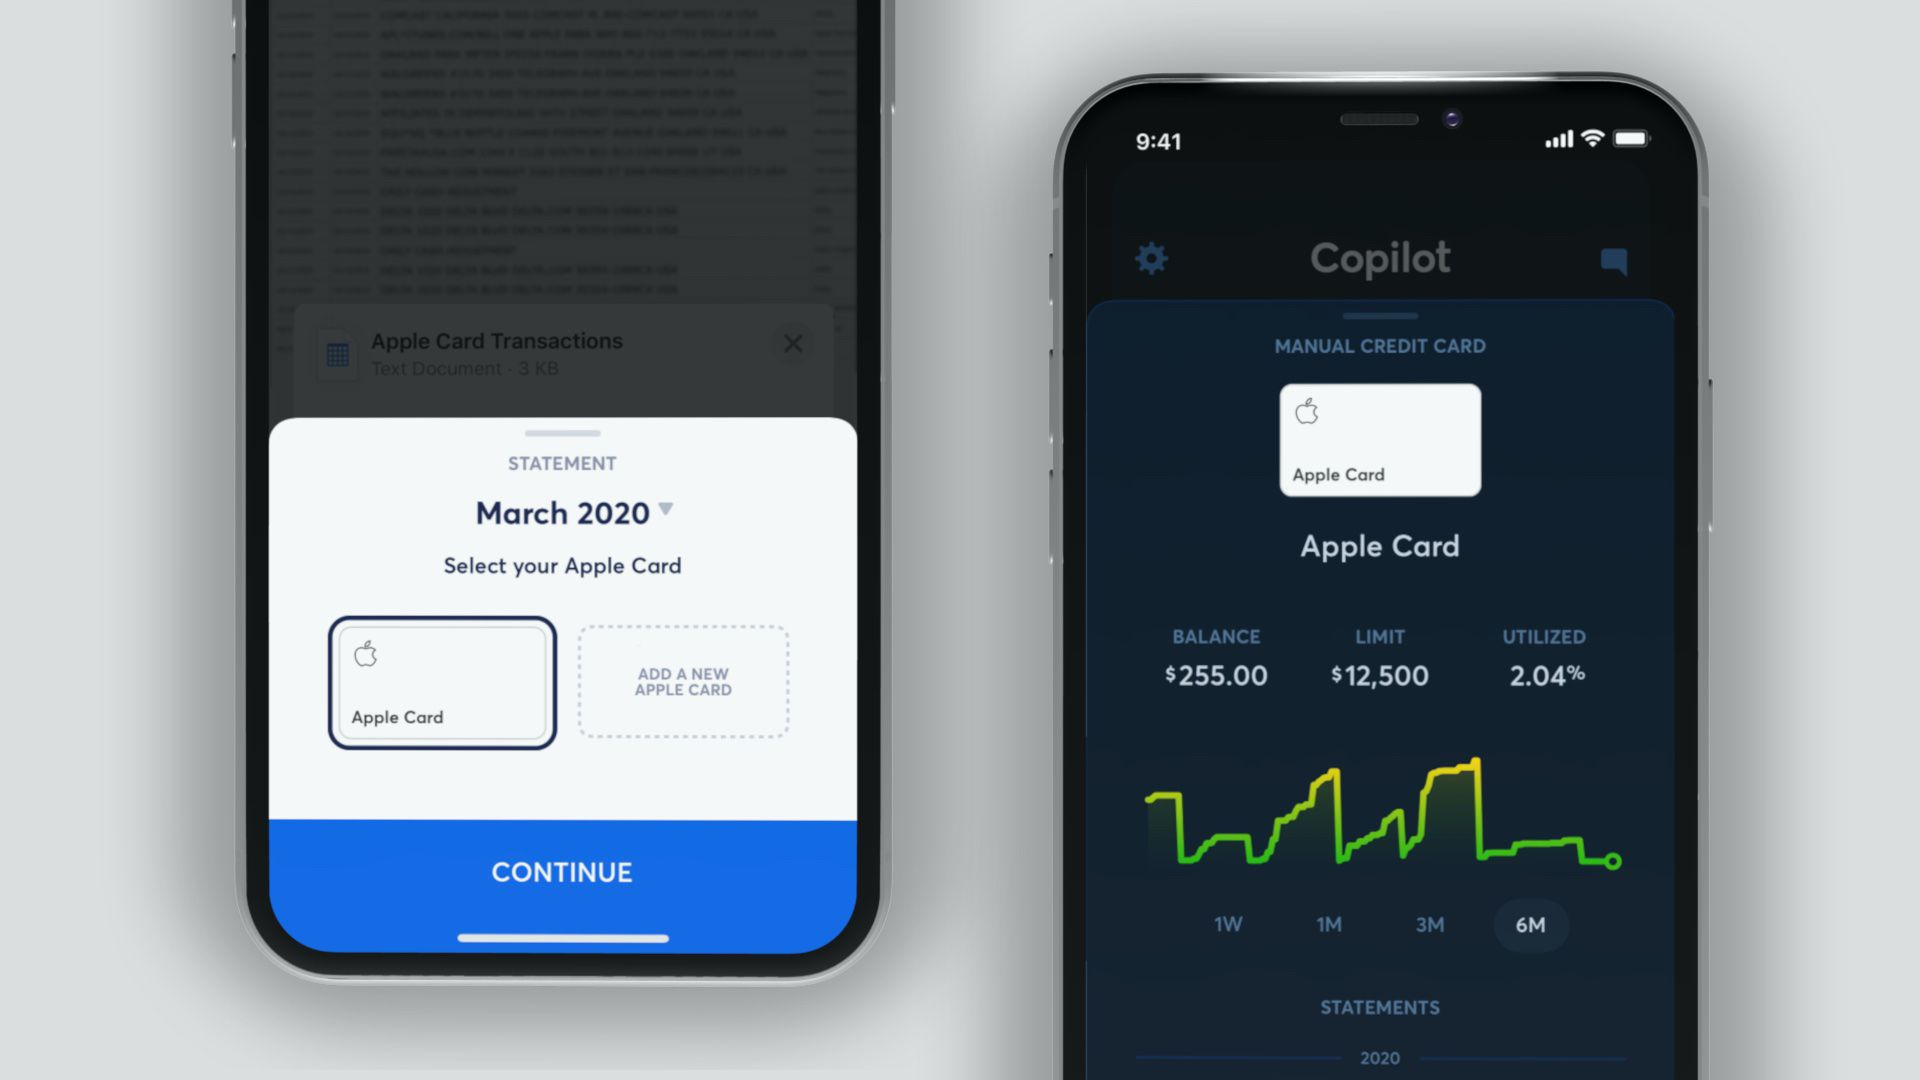 Finance App 'Copilot' Adds Support for Importing Apple Card ...